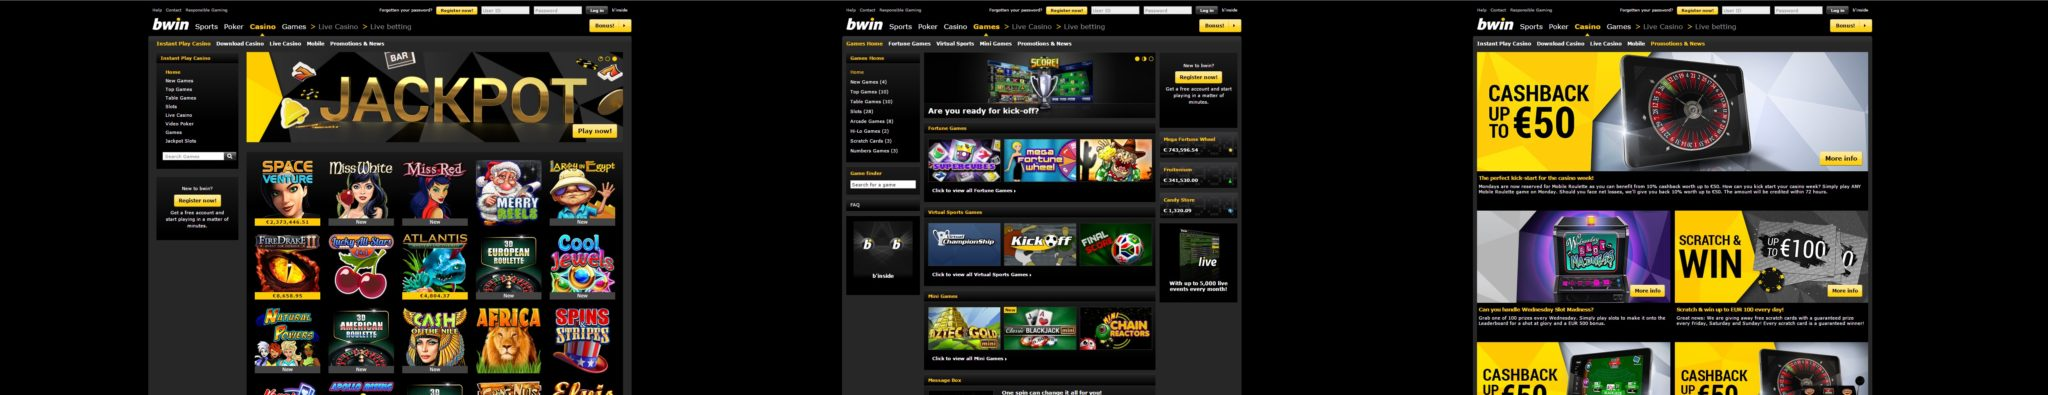 bwin live chat support